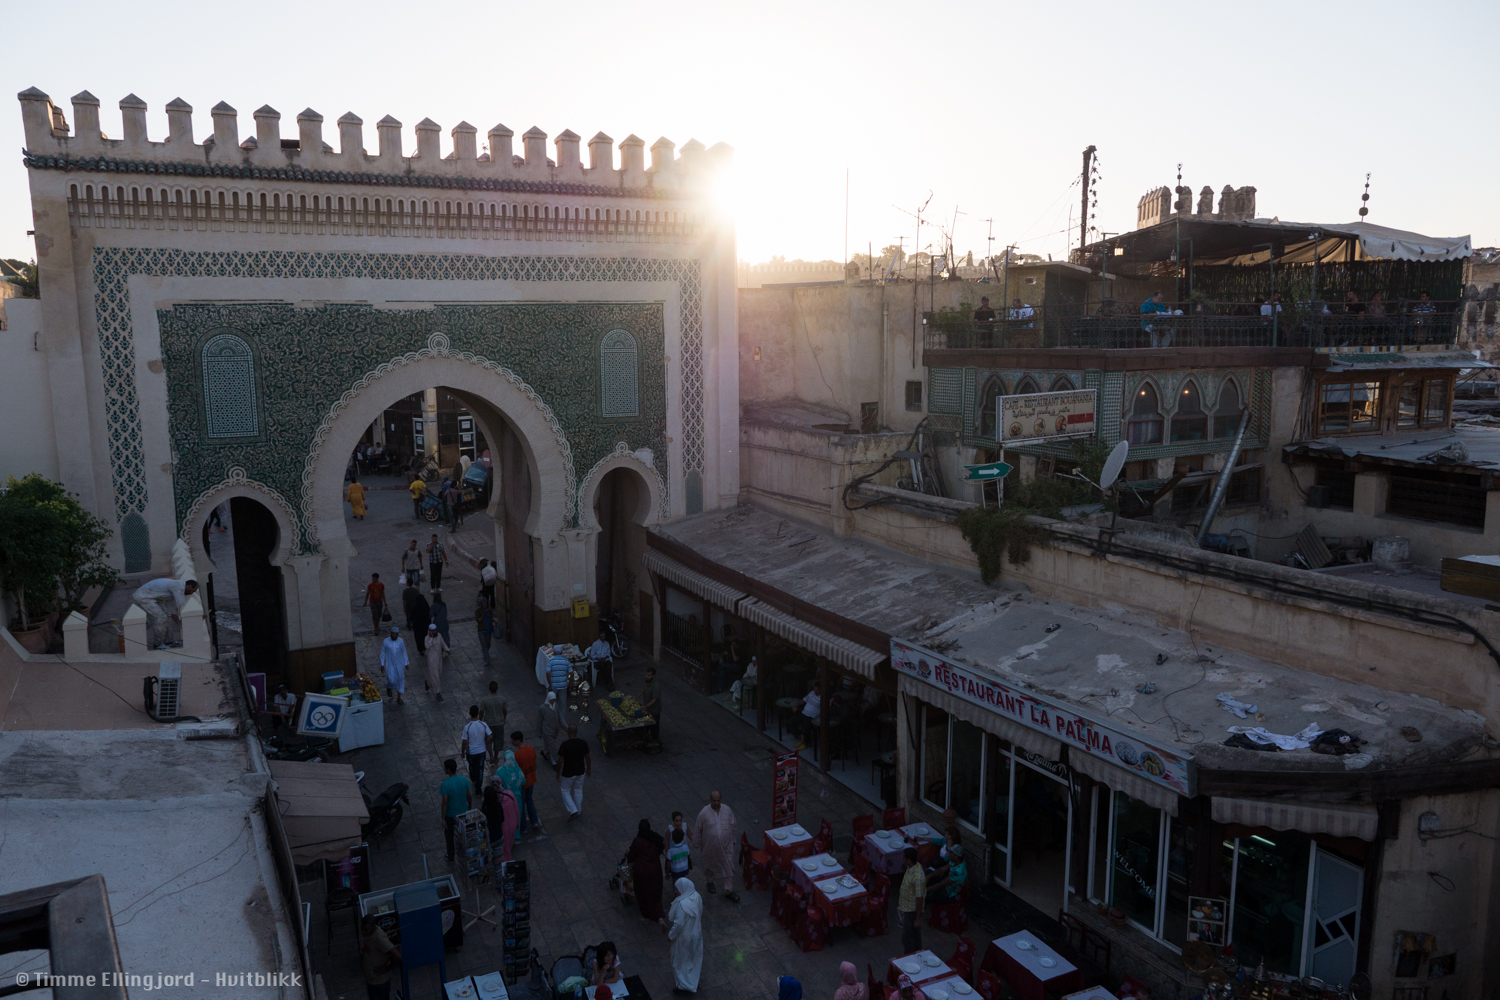 Fes at sunset